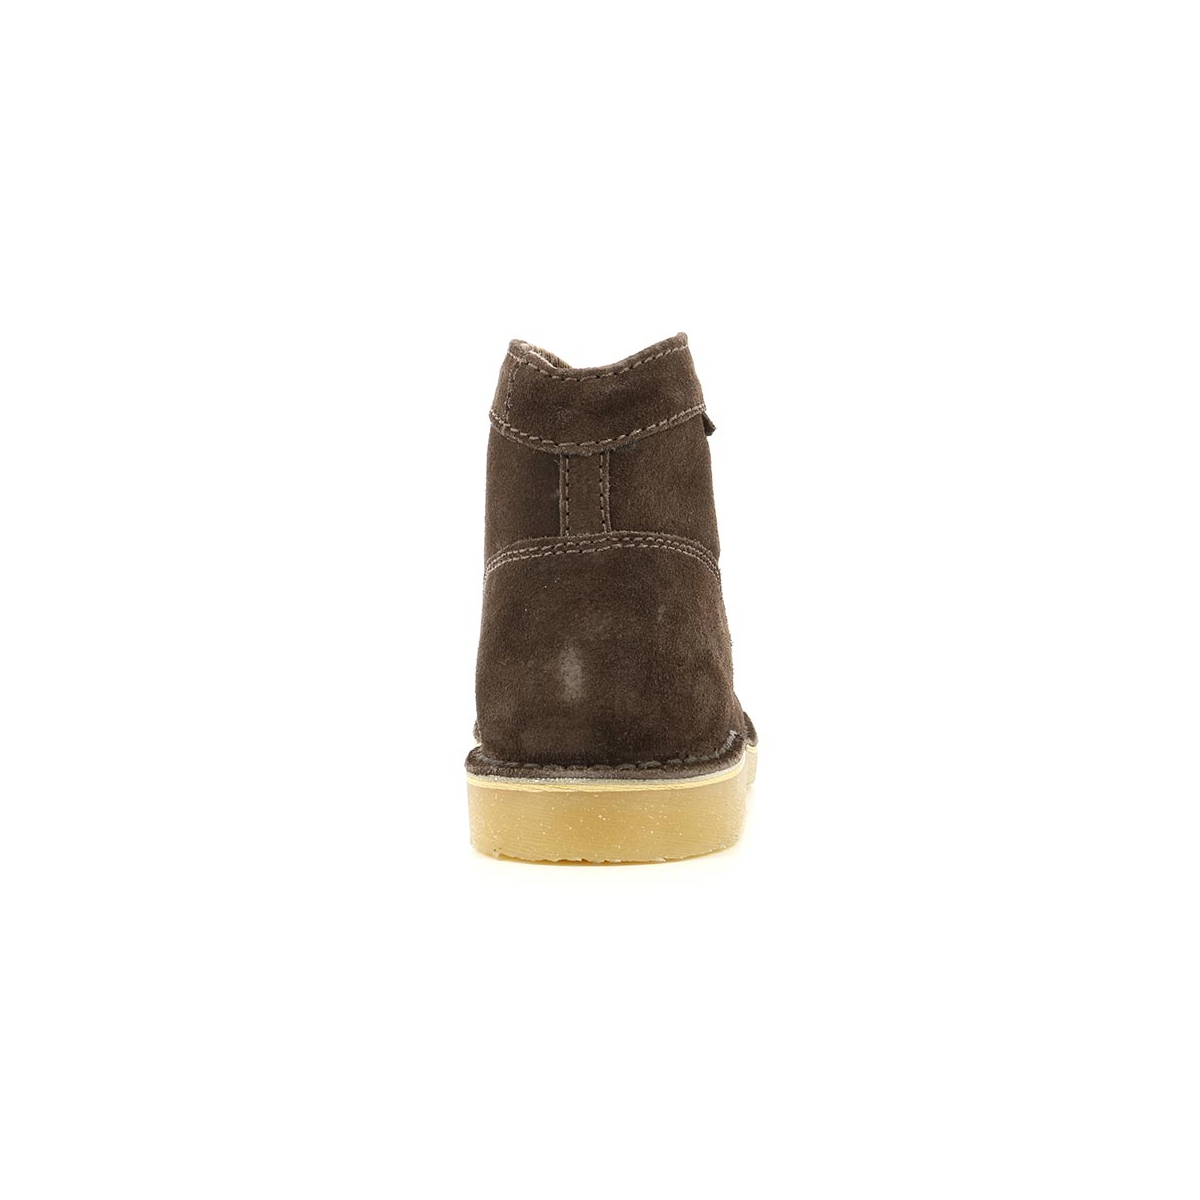 Kickers Chaussures Orilegend Homme Fonce Marron gw7PUvF